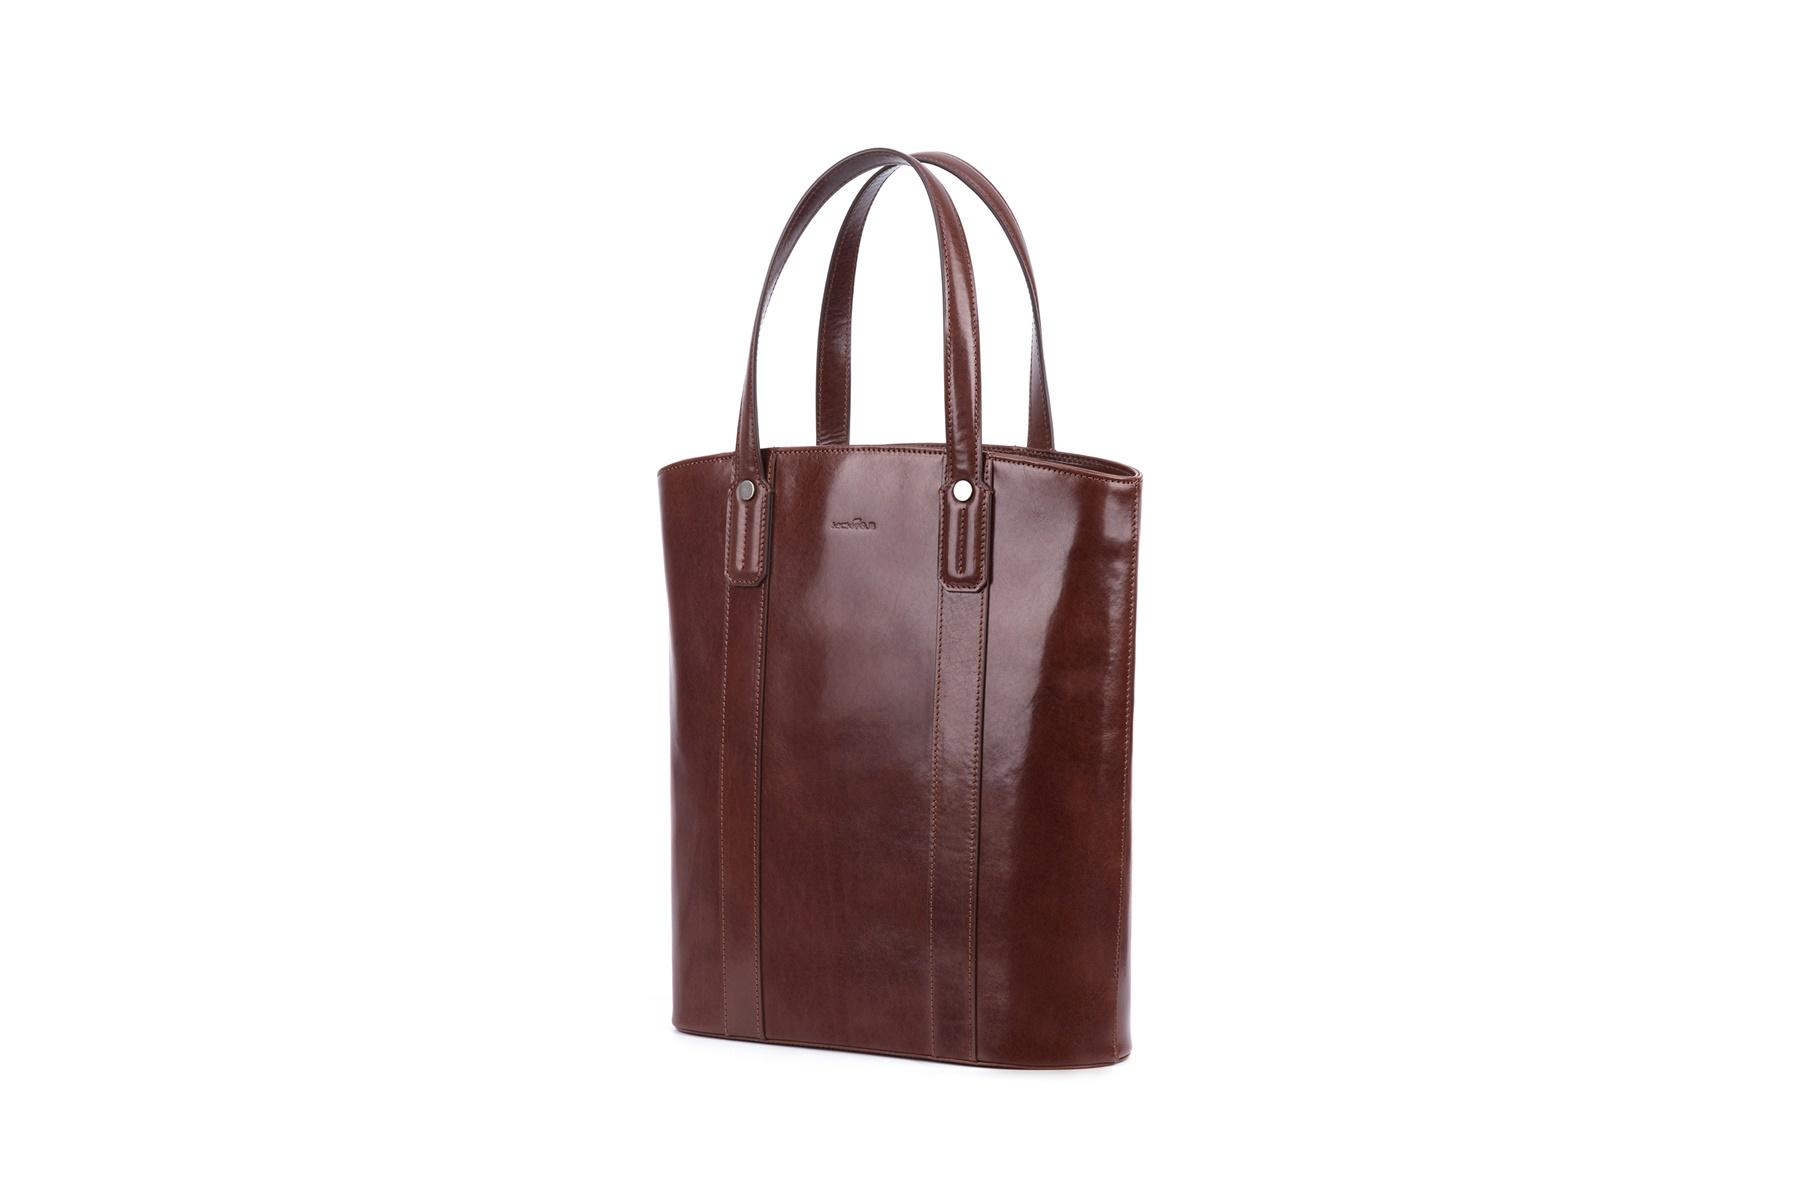 cheap trendy tote bags inquire now for ladies GF bags